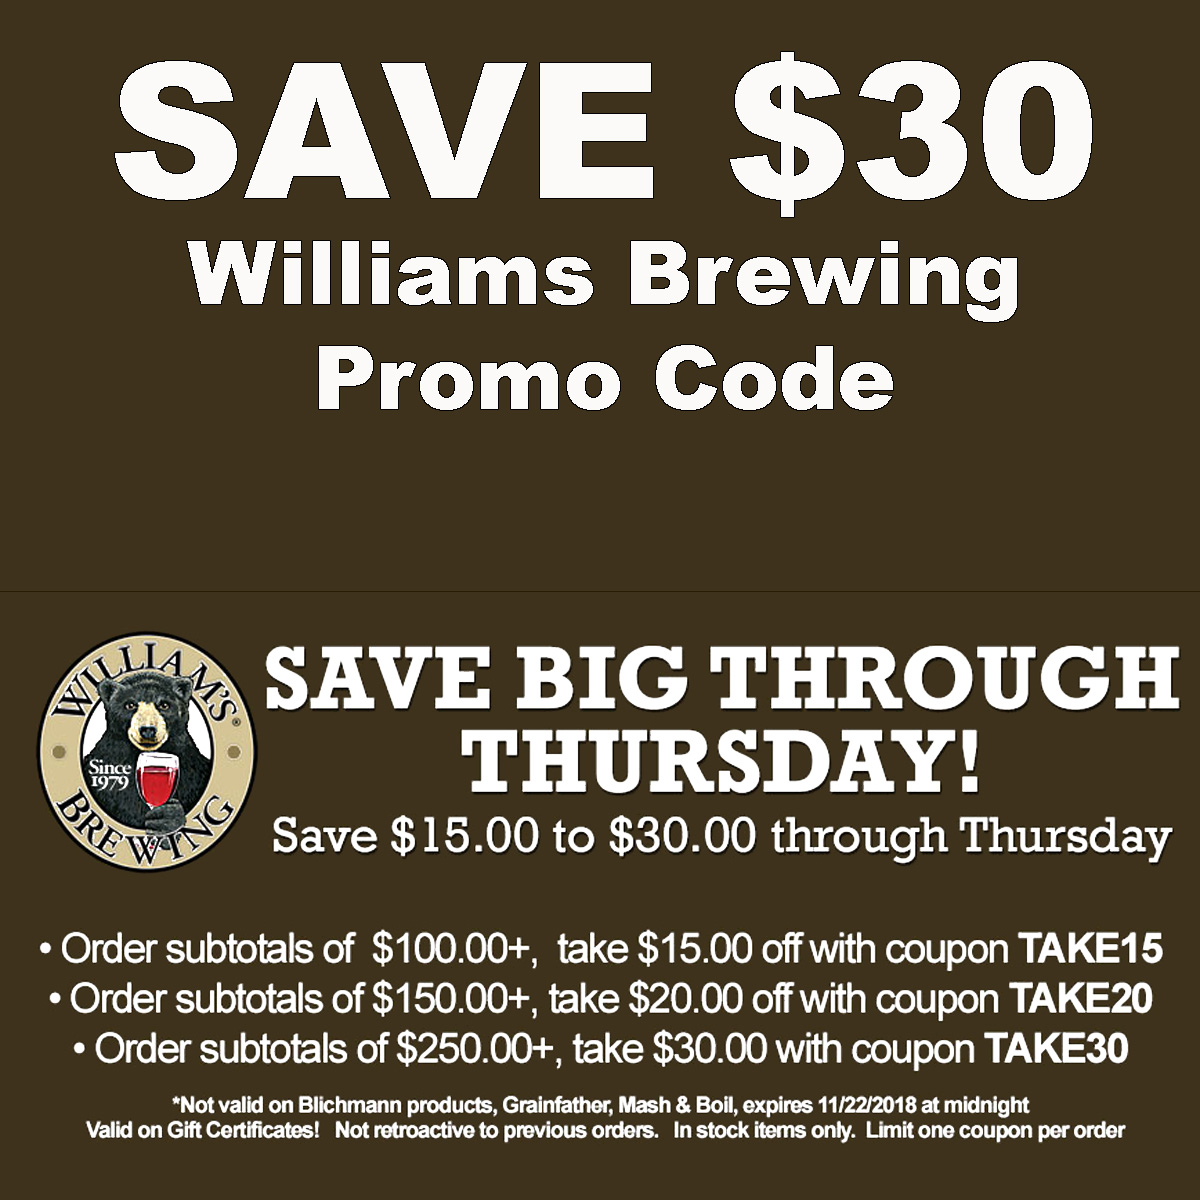 Williams Brewing Save $30 On Your Williams Brewing Purchase With These WilliamsBrewing.com Promo Codes Coupon Code